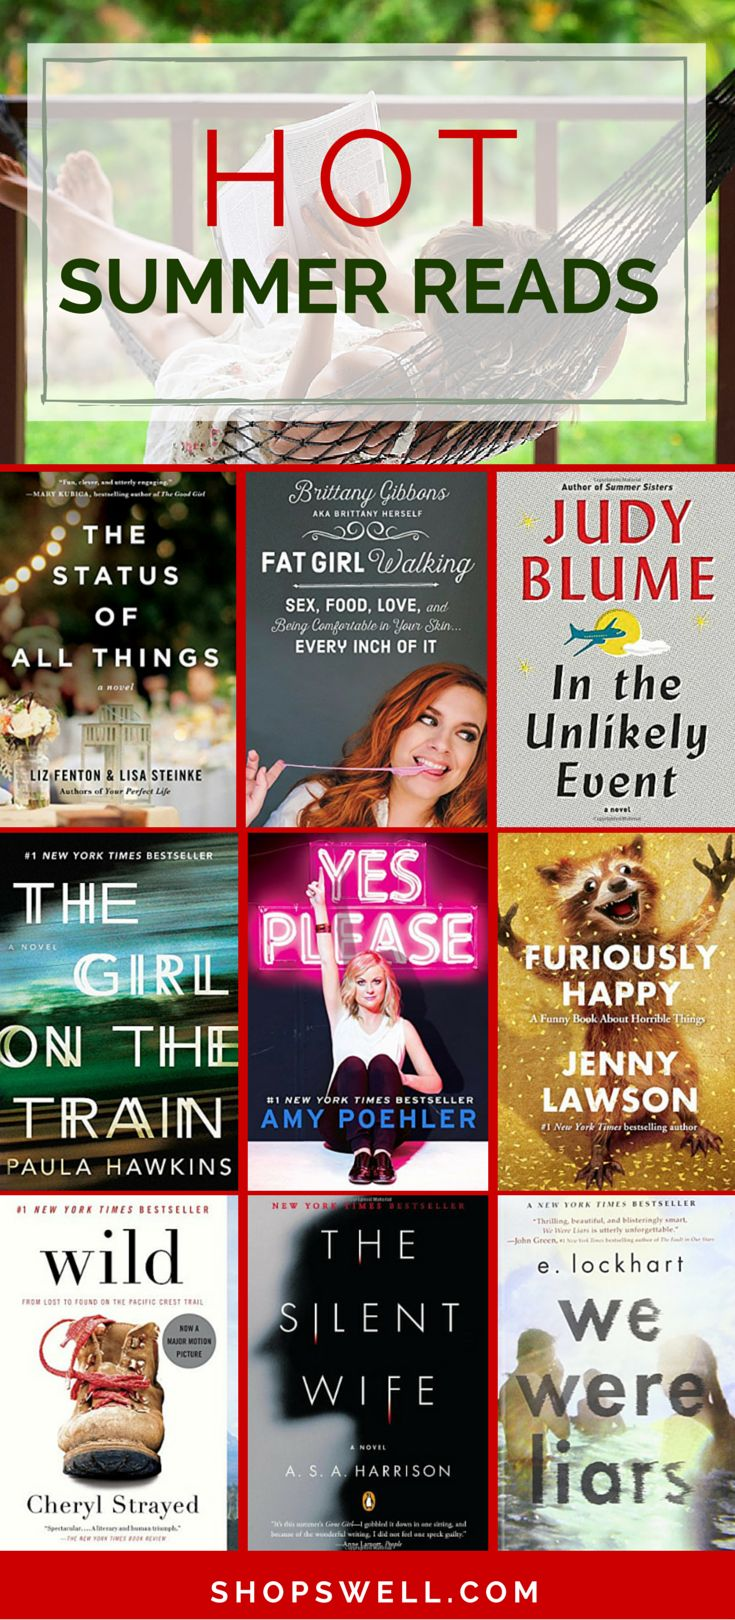 These are this summer's hottest books from some famous authors, up and coming writers and bloggers you have come to love. Great reading list shared by @happyhealthyhip.